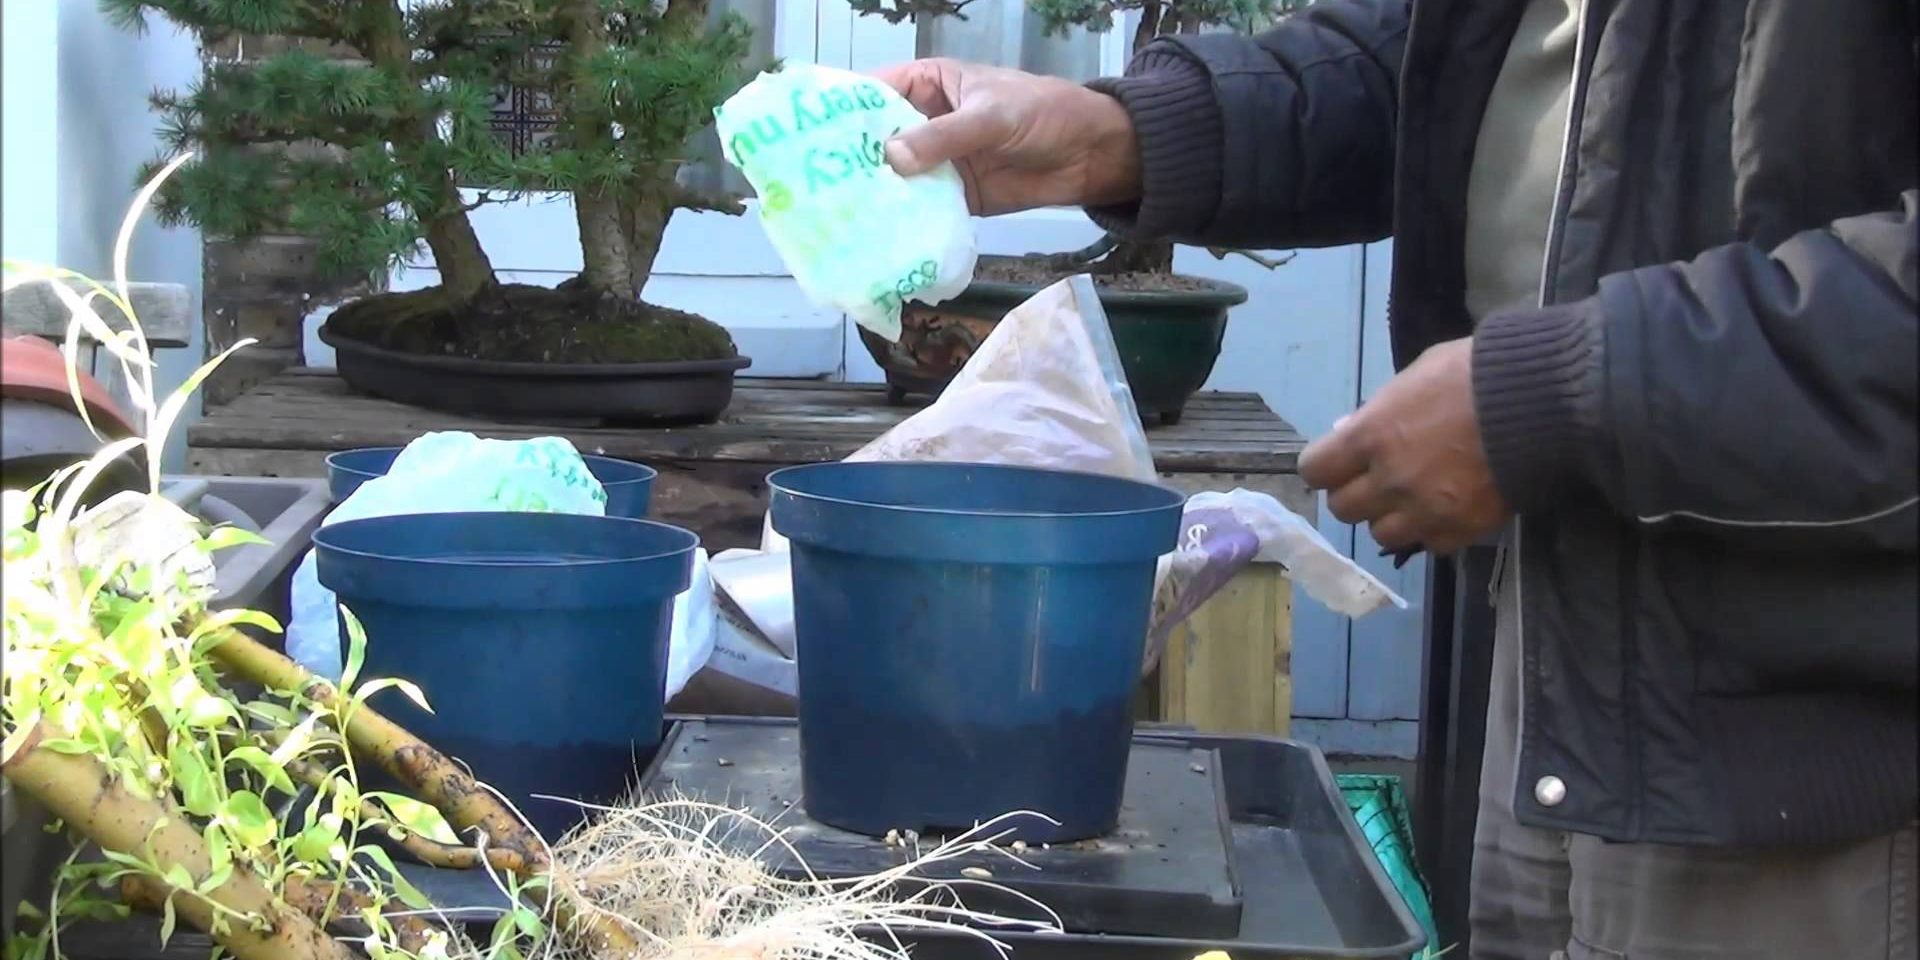 How To Grow Bonsai Trees From Branch Cuttings How To Bonsai Weeping Willow Trees Part 1 Mikbonsai Trees South West London